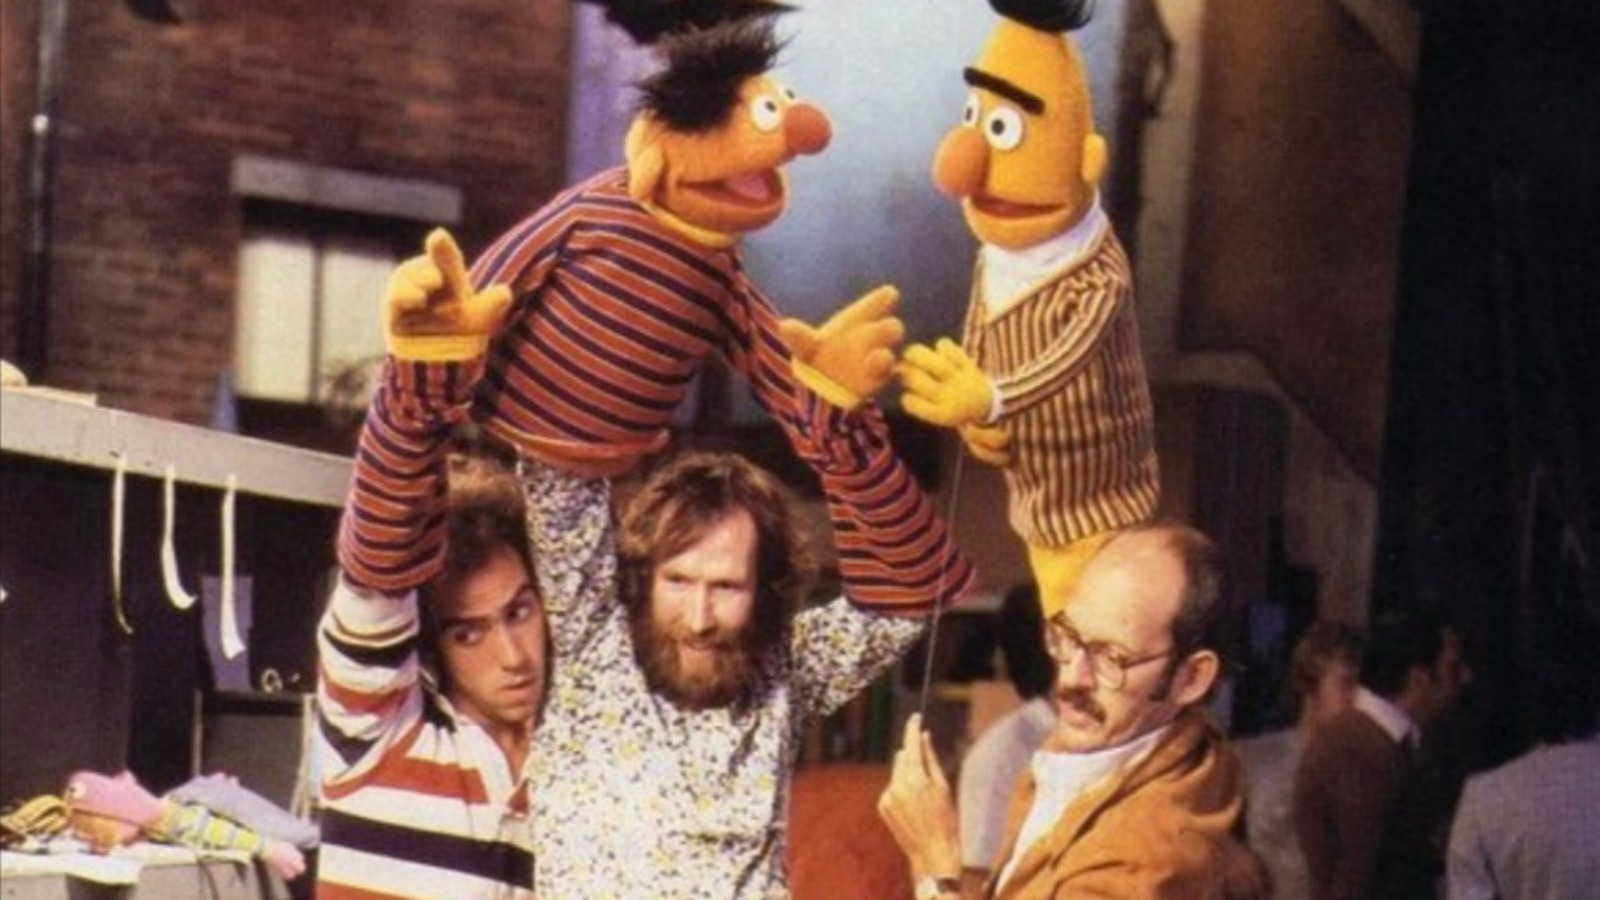 """Frank Oz Wants To Play With The Muppets Again But """"Disney Doesn't Want Me"""""""